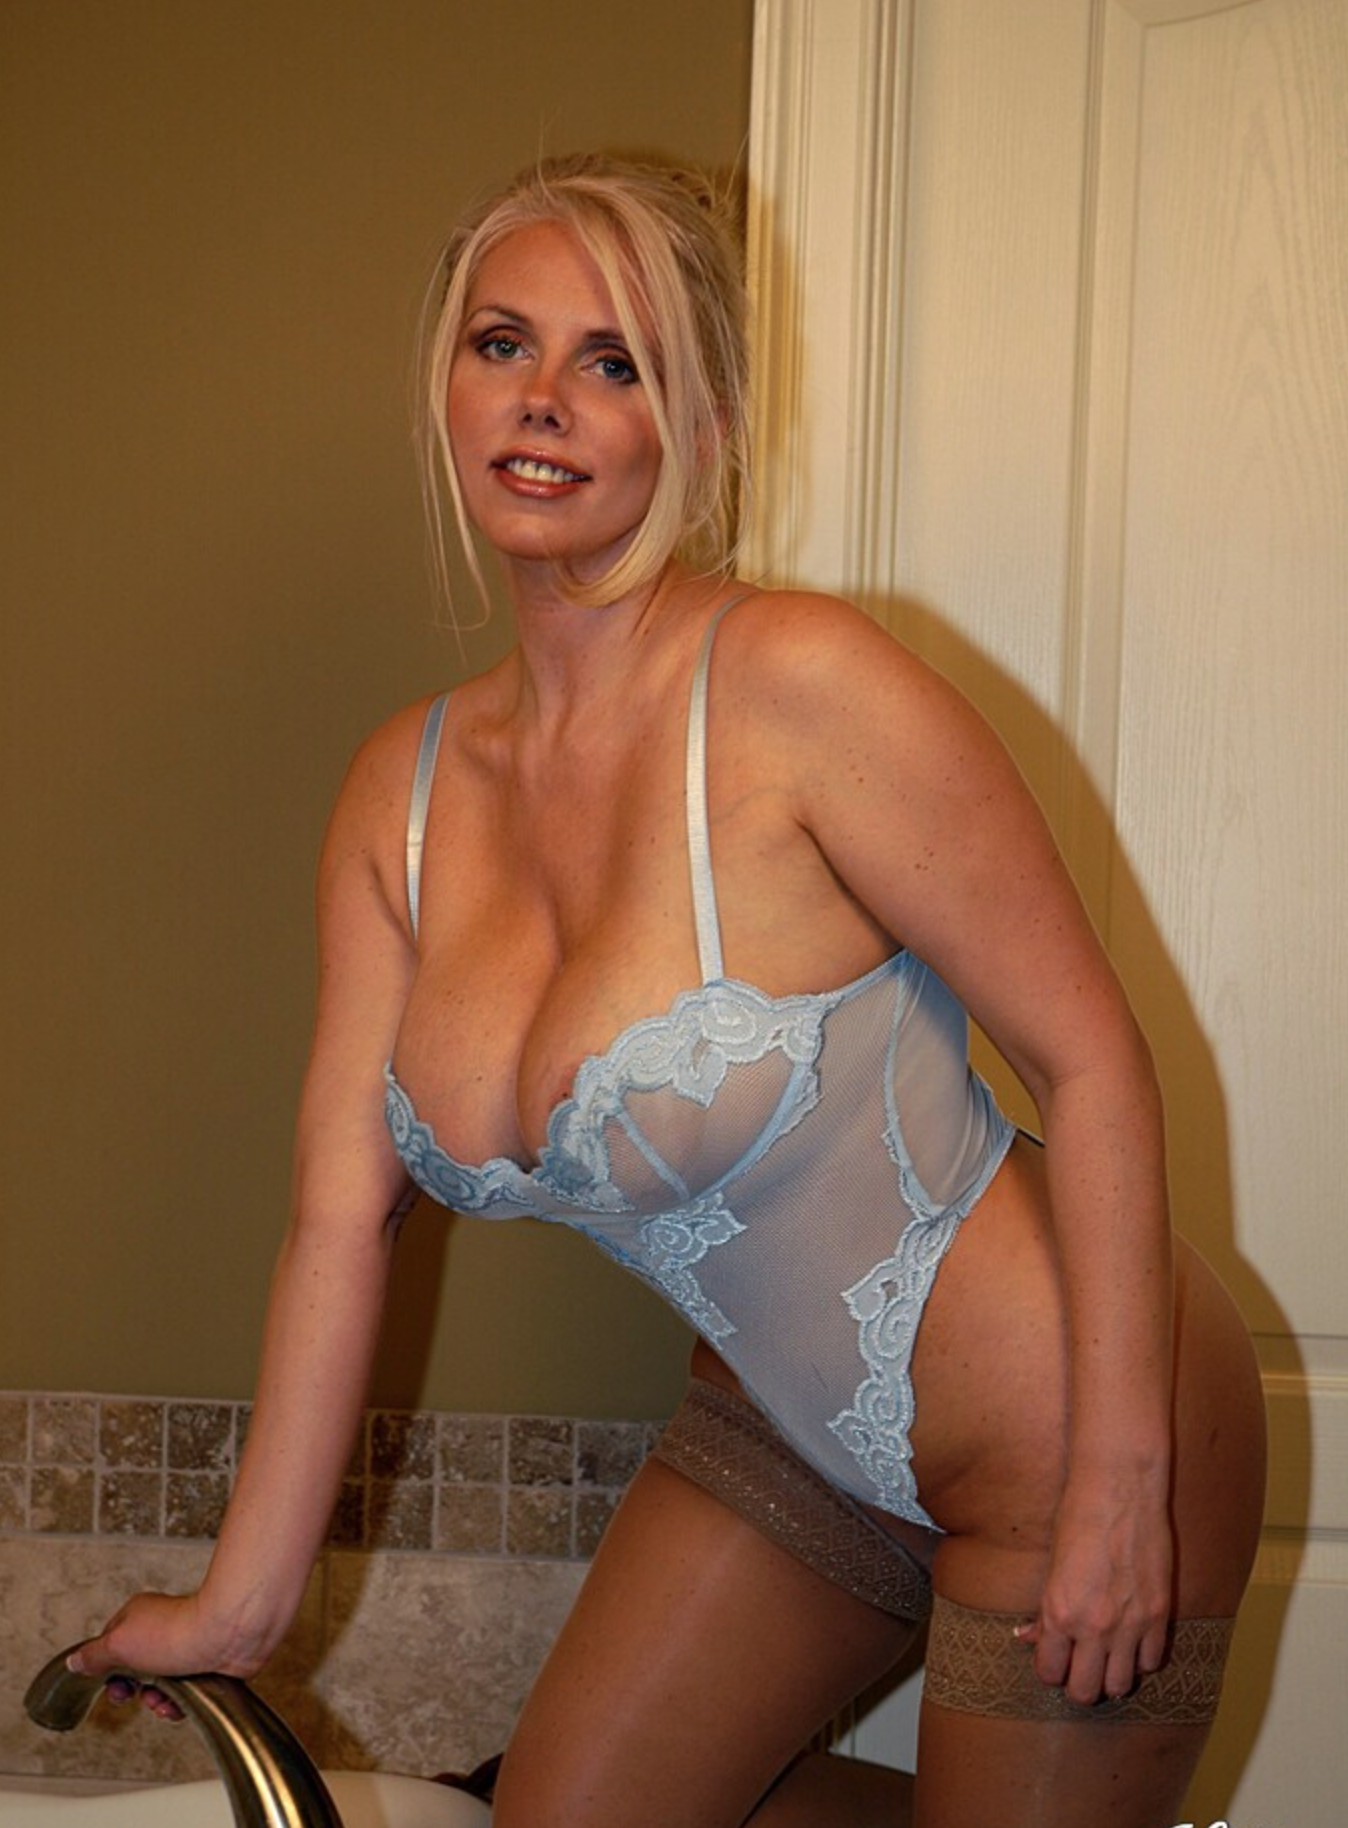 Lovely blonde milf in the perfect position